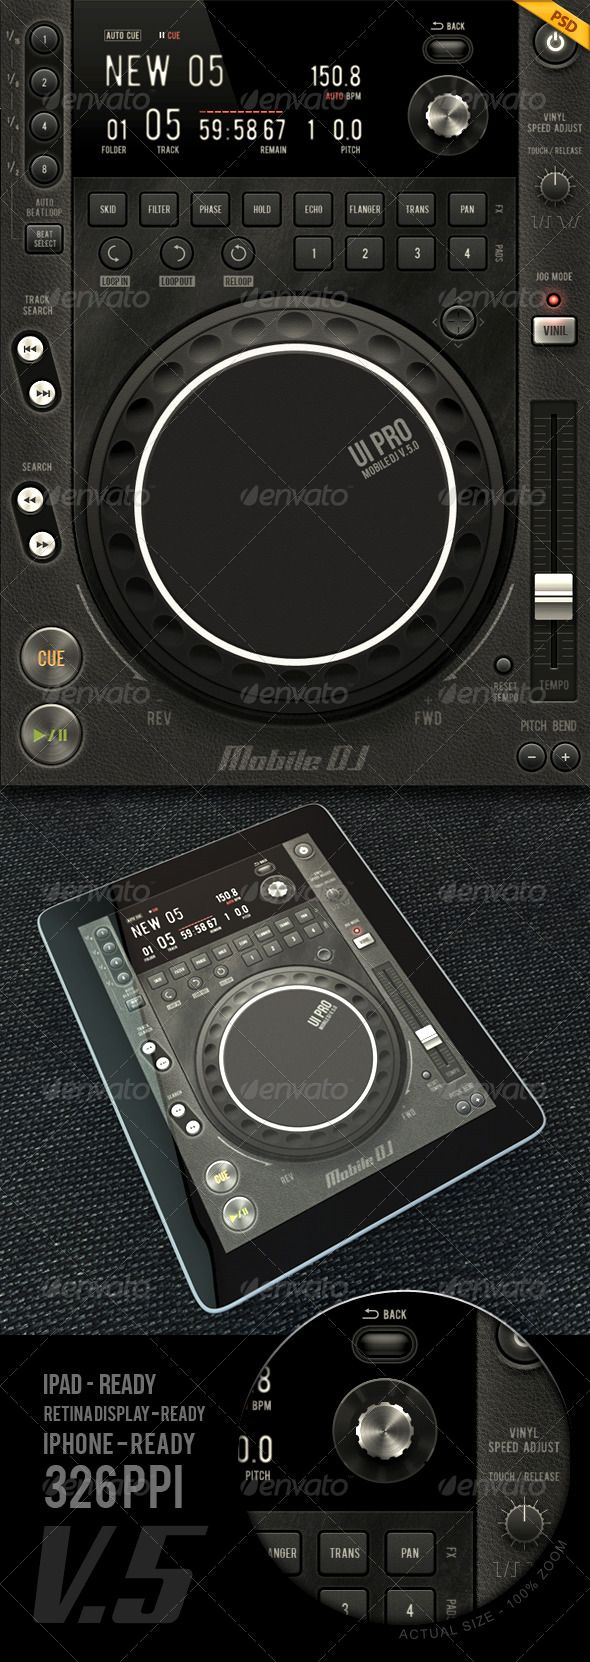 Tablet/Phone User Interface PROFESSIONAL SET V . 5.0 / MOBILE DJ by diegomonzon